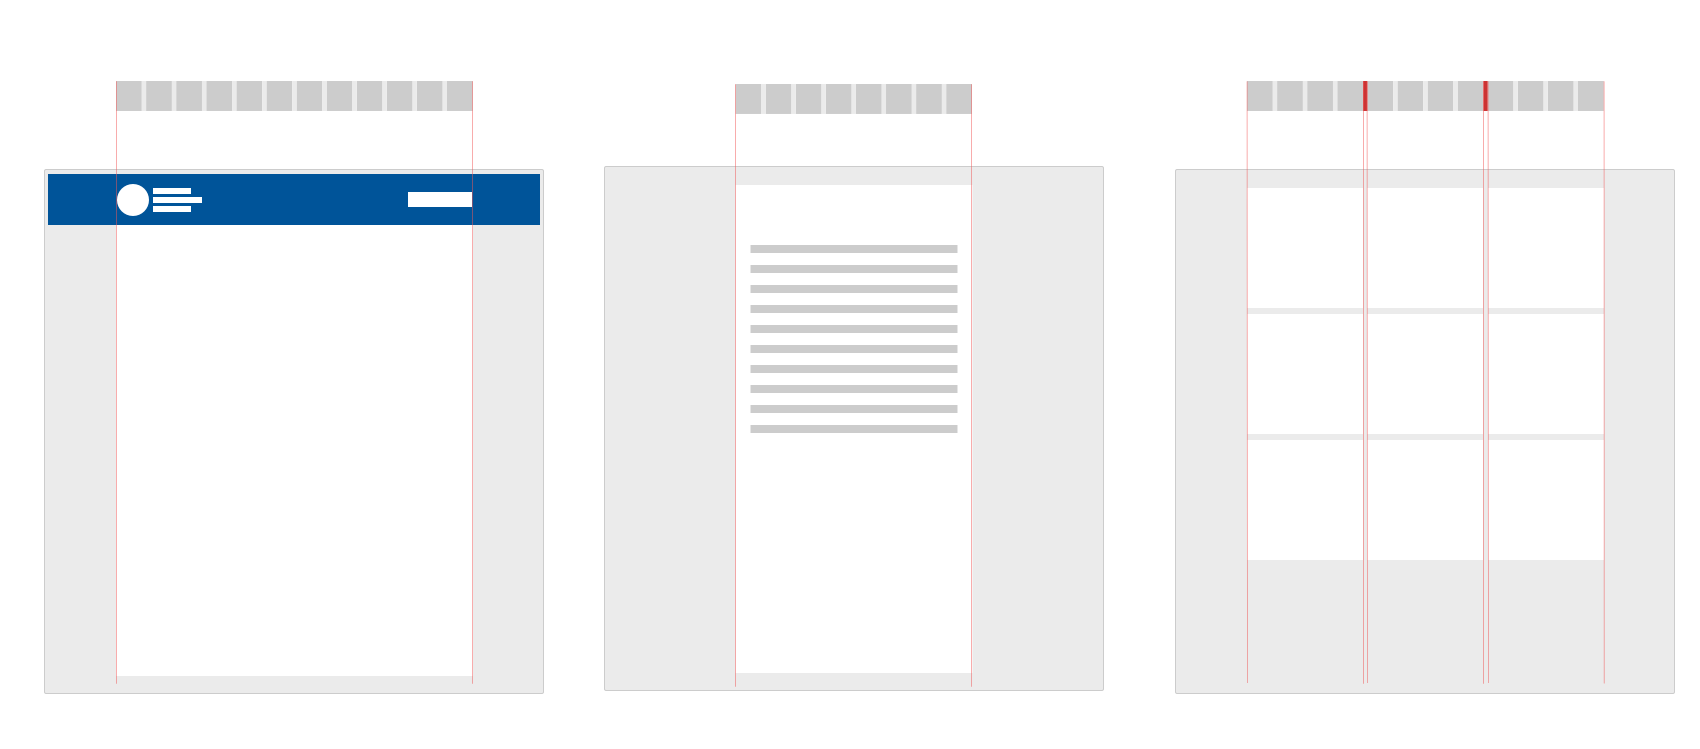 Different layouts are used to present different types of information